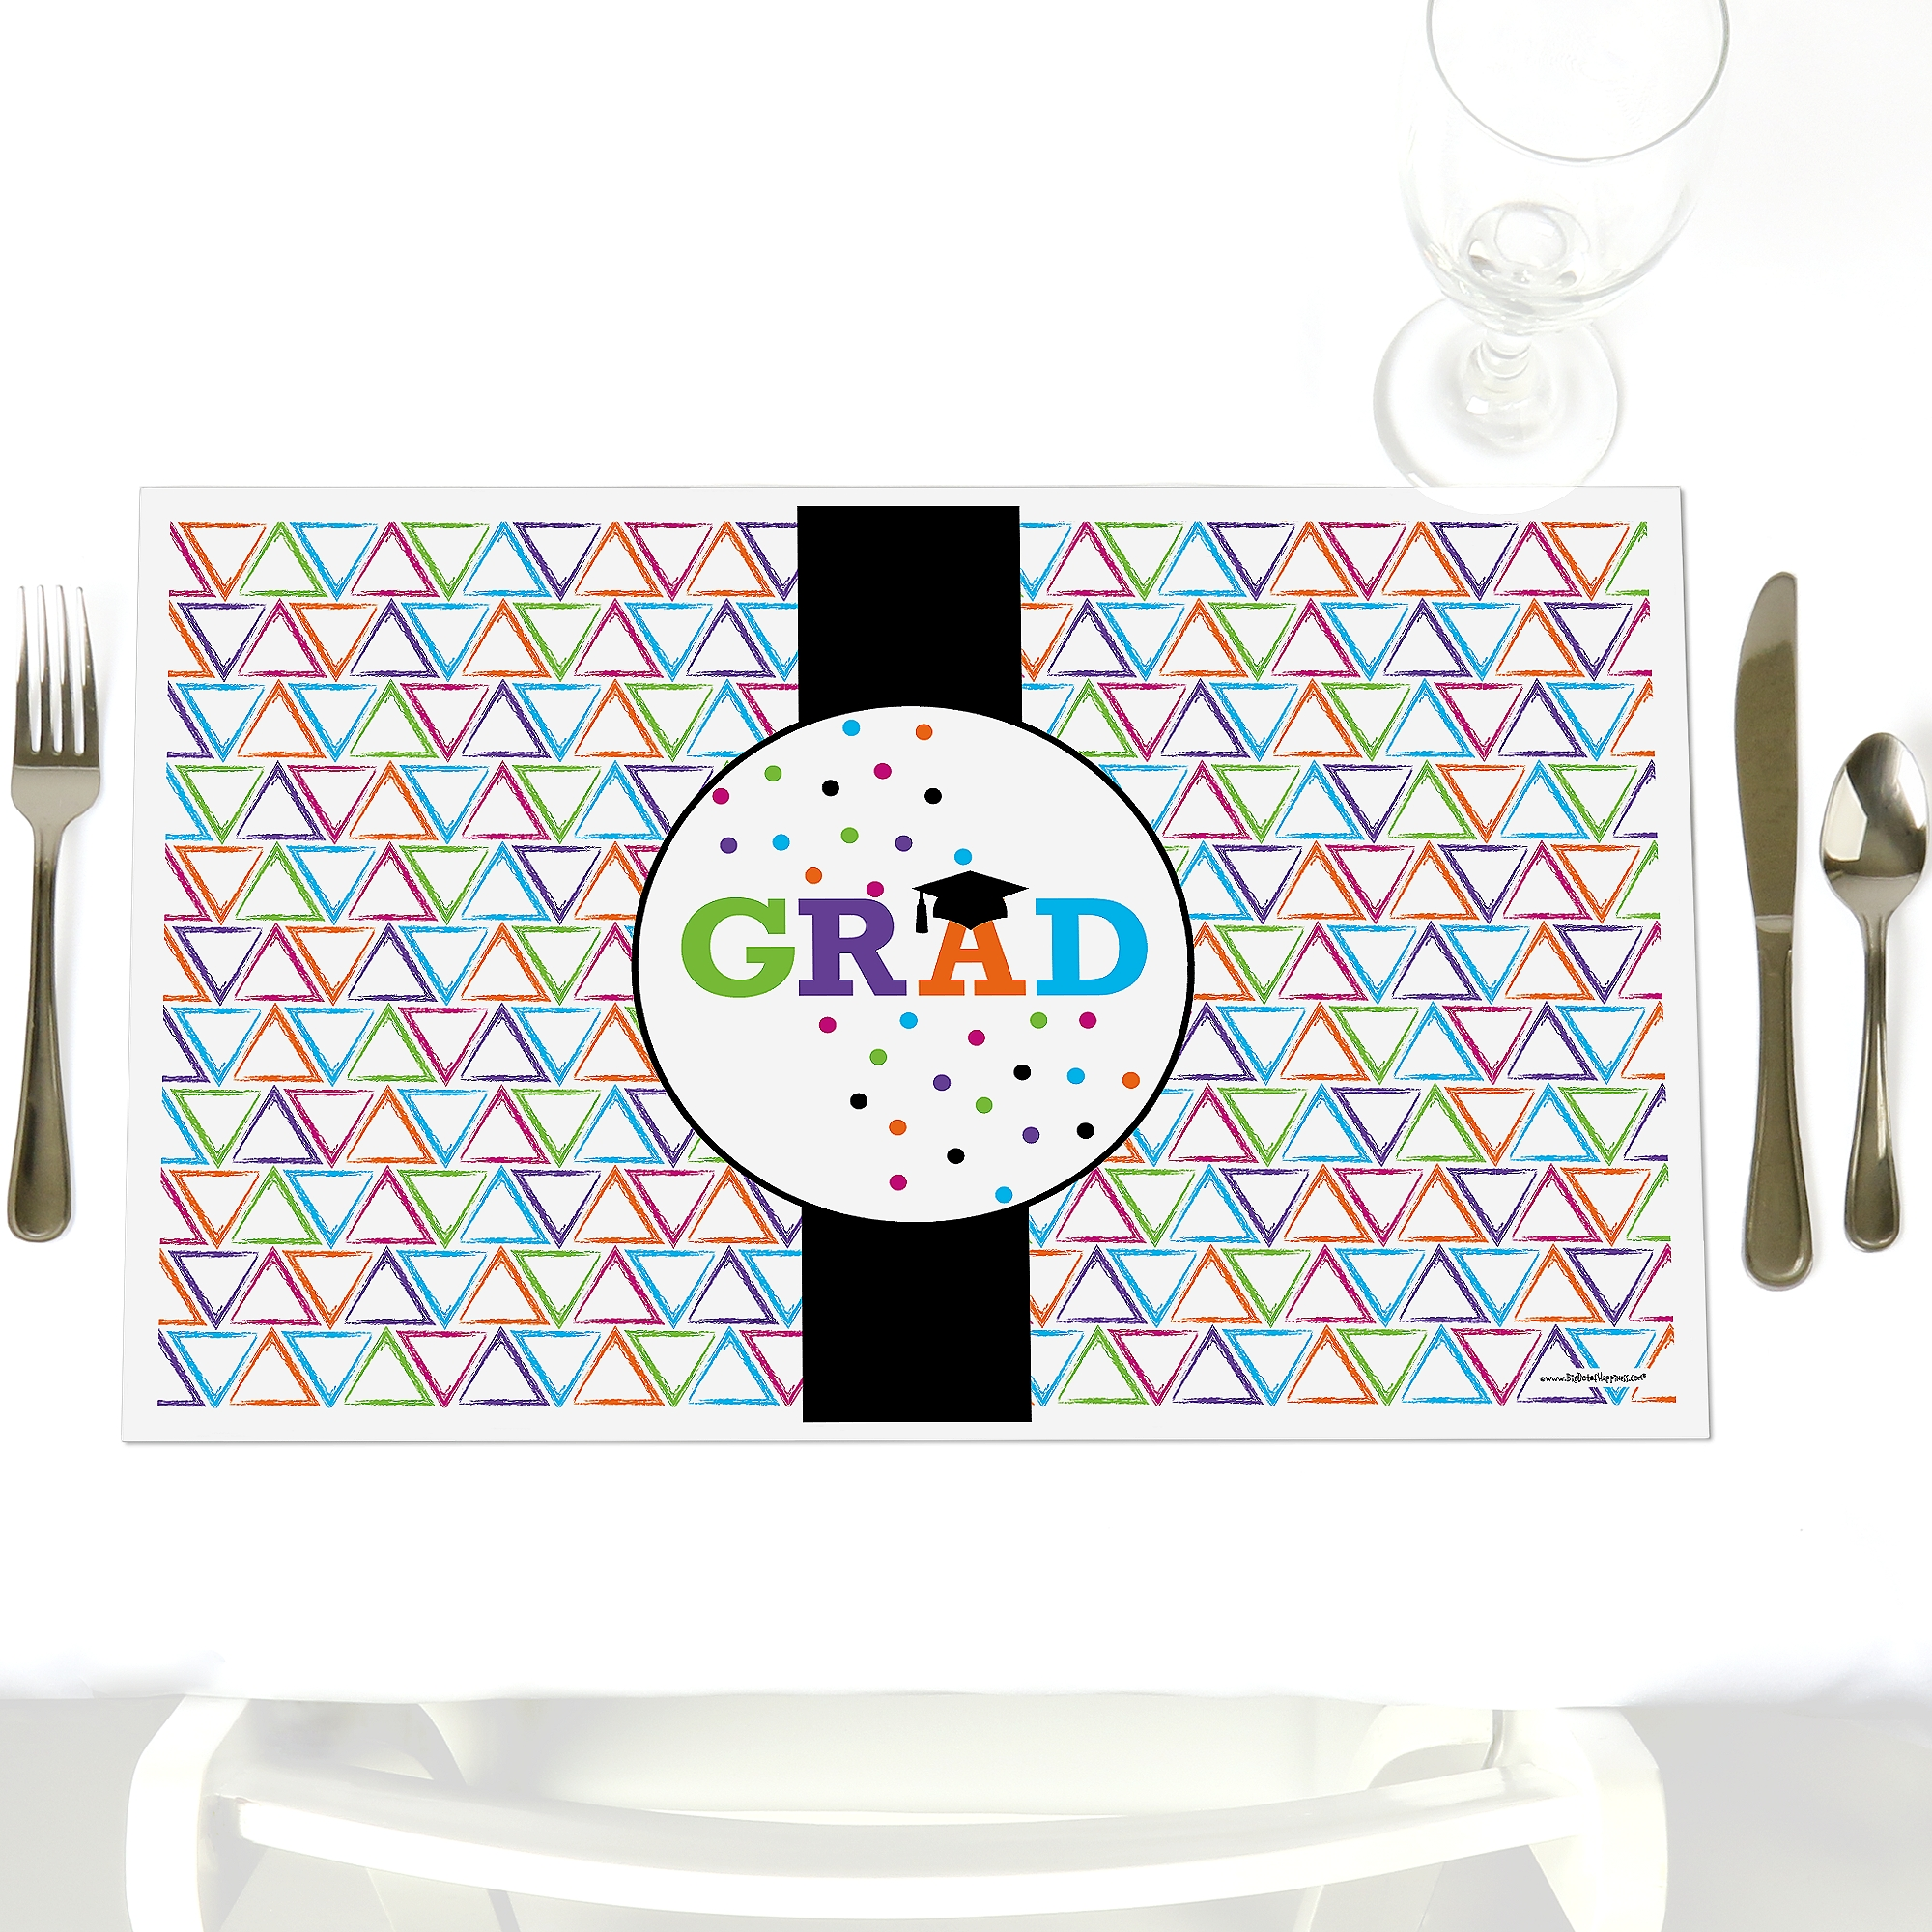 Hats Off Grad - Party Table Decorations - Graduation Party Placemats - Set of 12